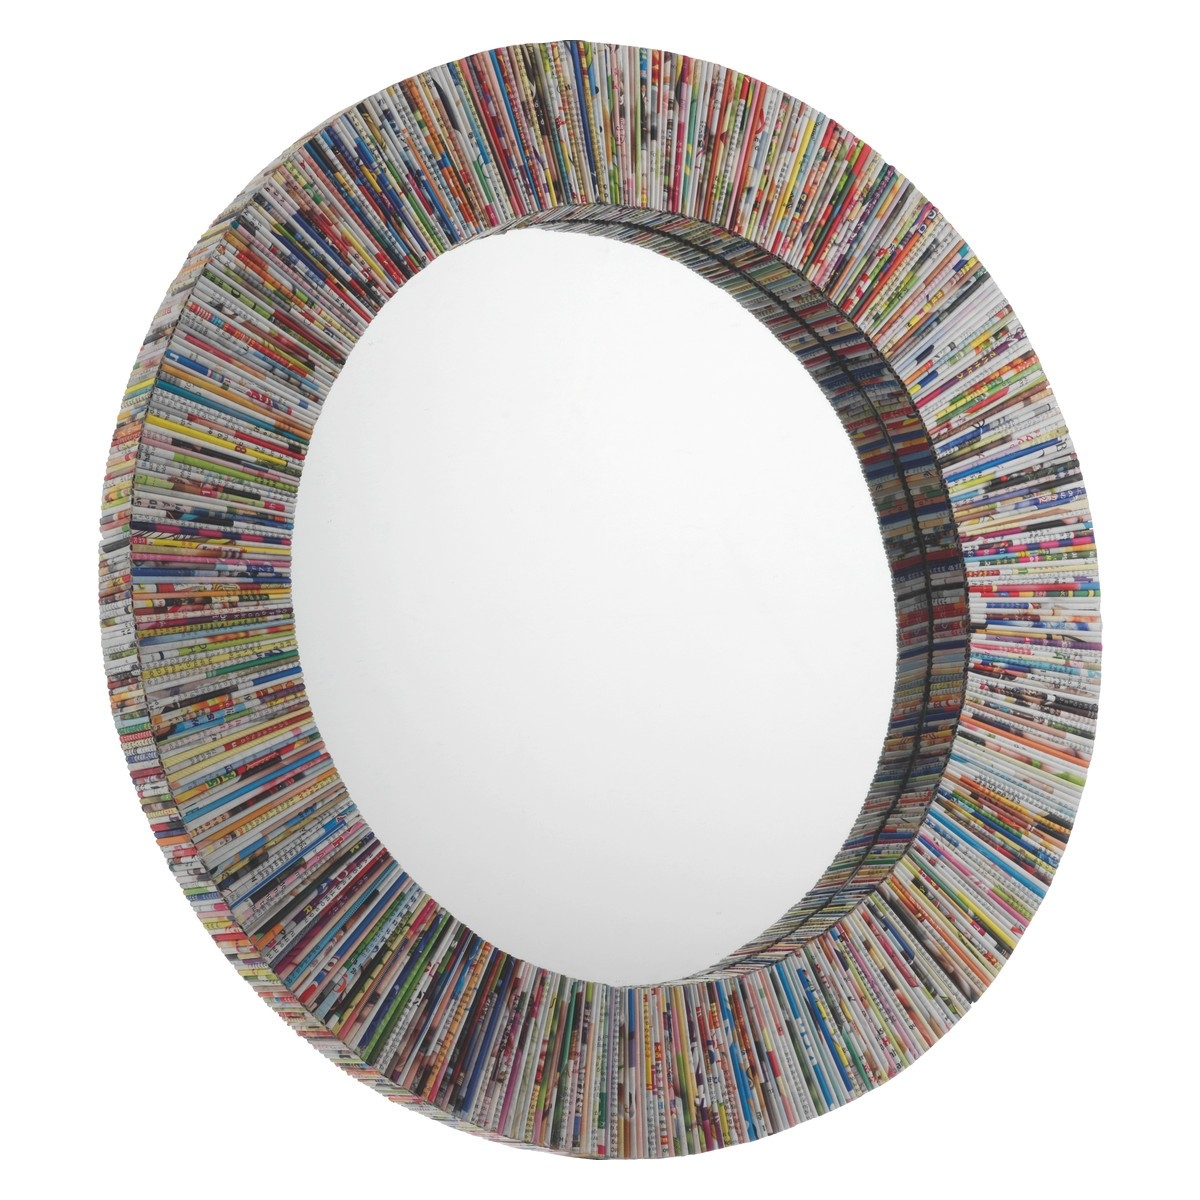 Get Wonderful Round Wall Mirror In Your Home The Home Redesign Inside Round Large Mirrors (View 14 of 15)